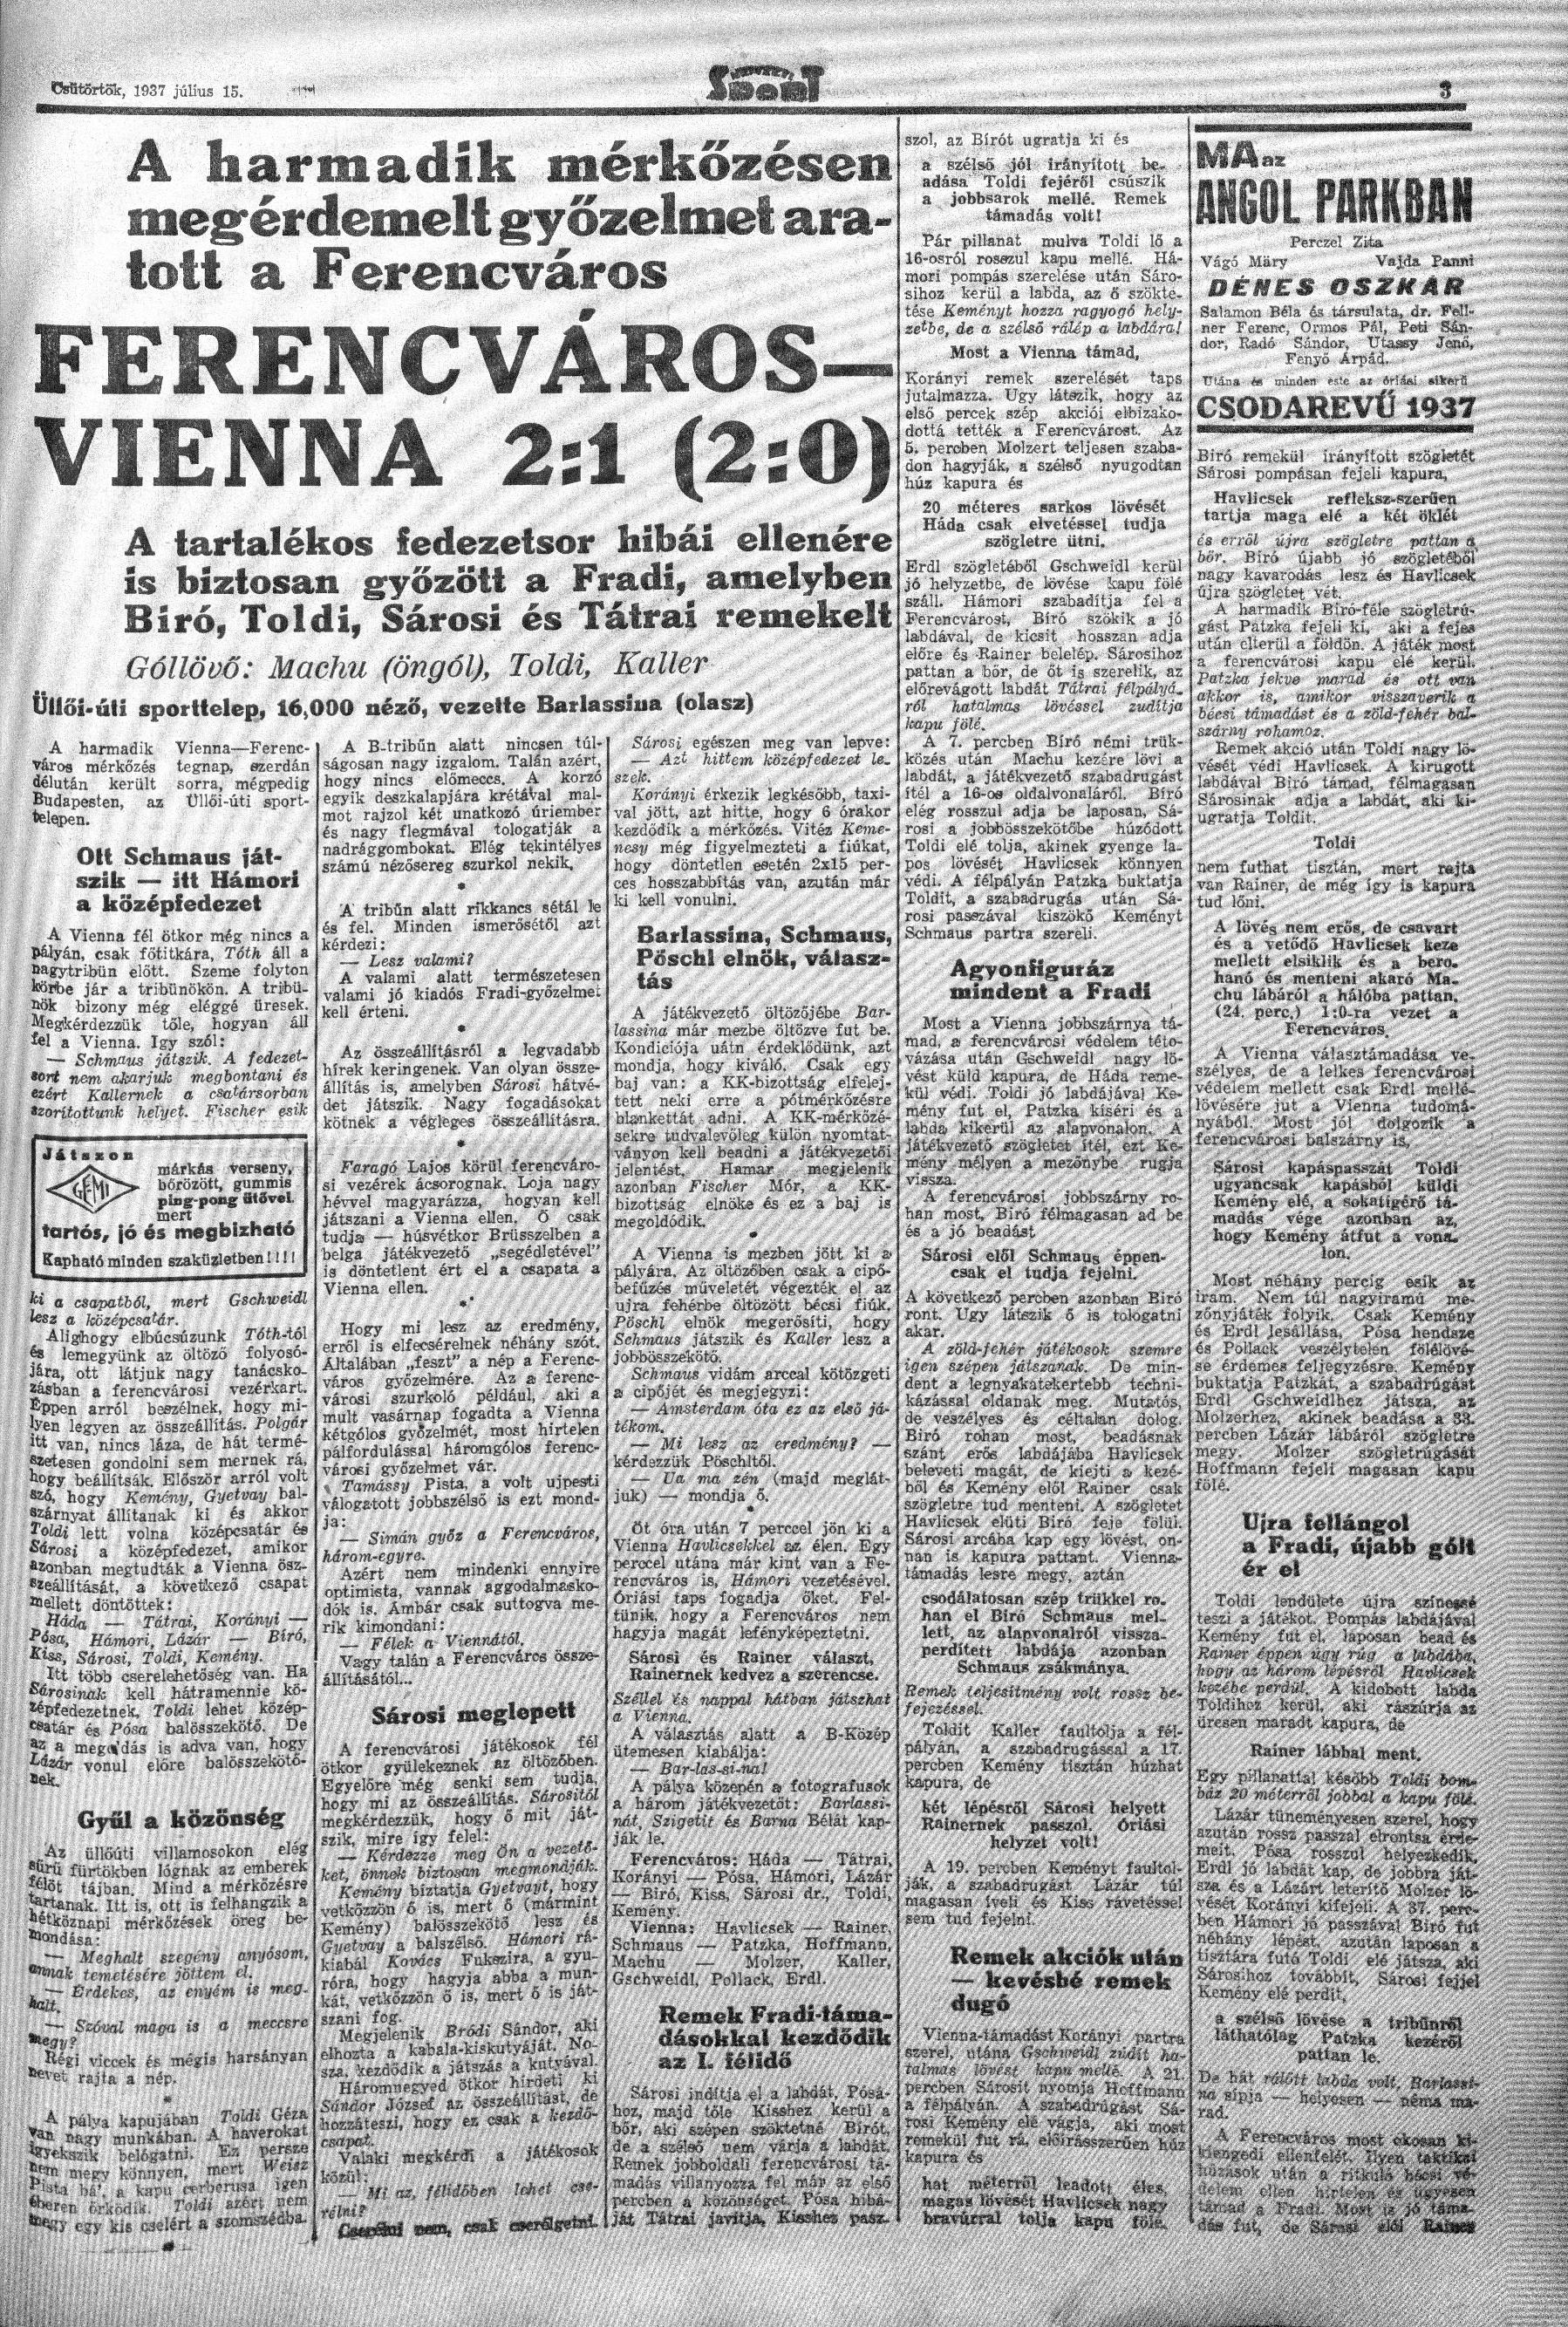 19370715_19370714_03_ftc-vienna_kk